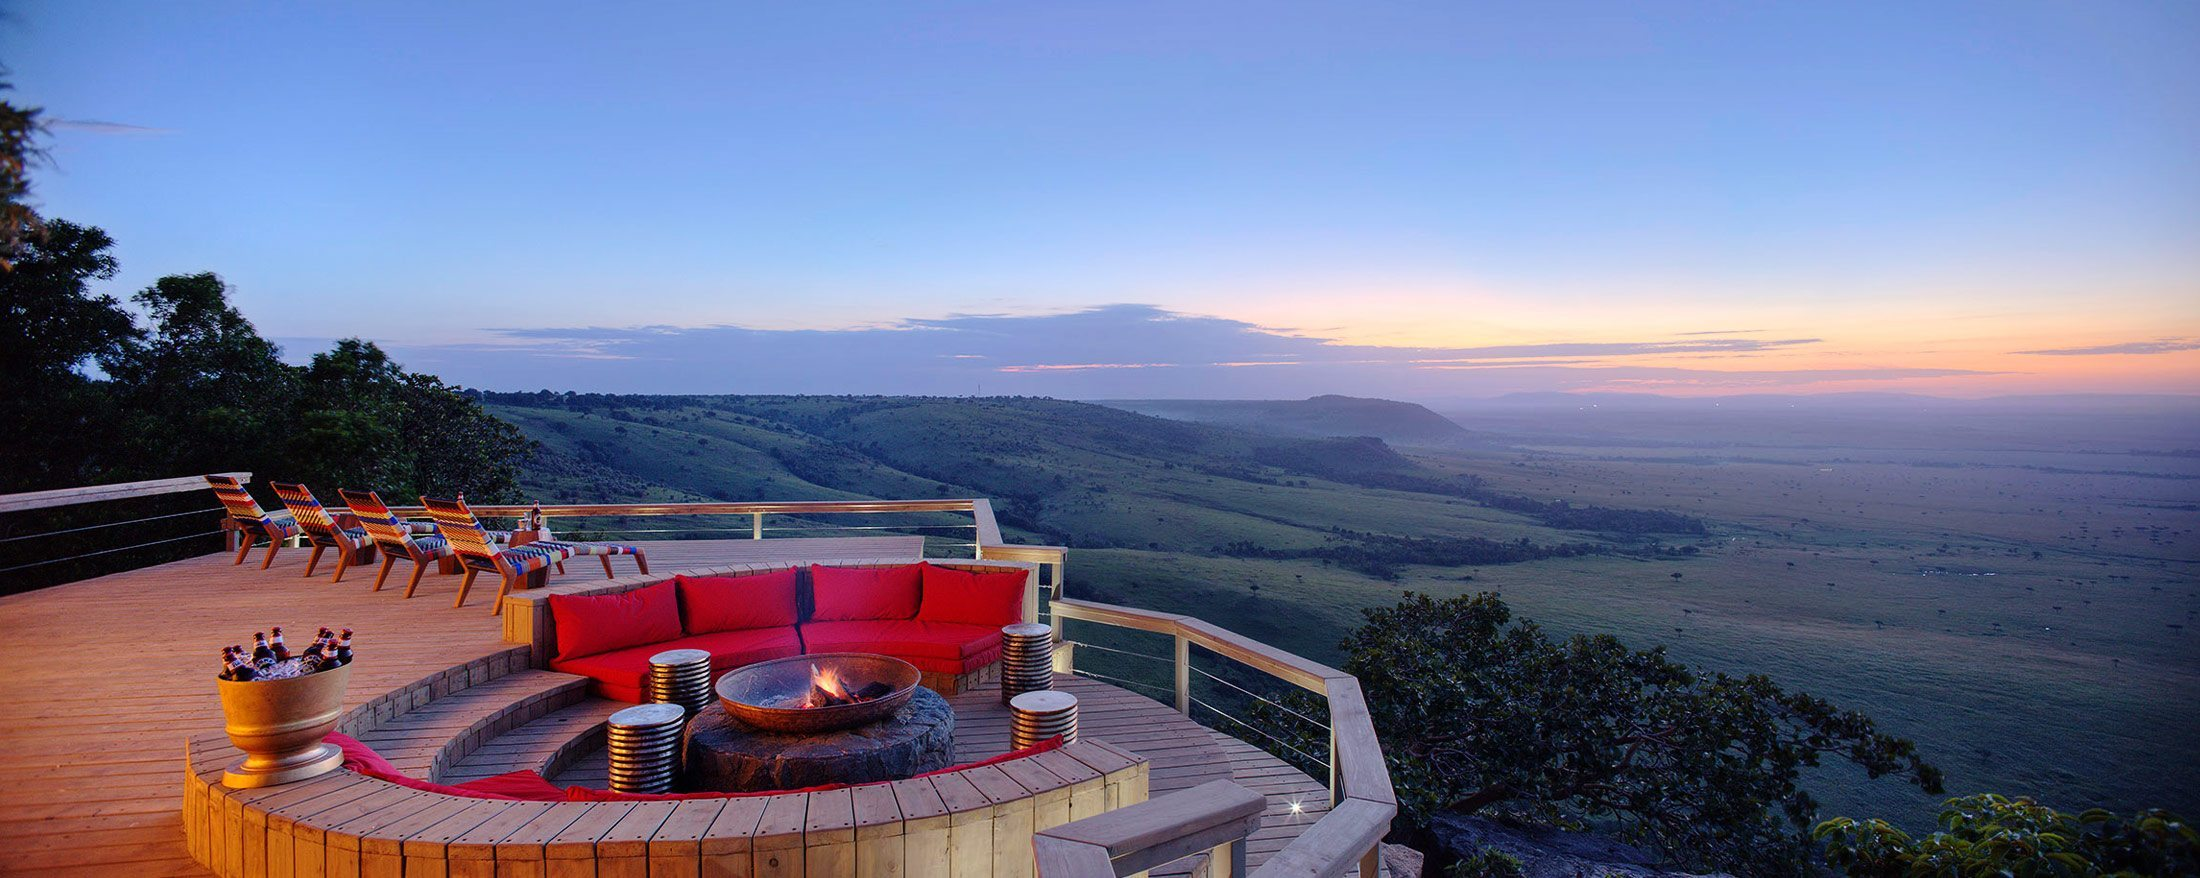 Luxury Kenya safari   The fire pit at Angama Mara, perched high above the Great Rift Valley, is perfectly positioned for sundowner drinks.